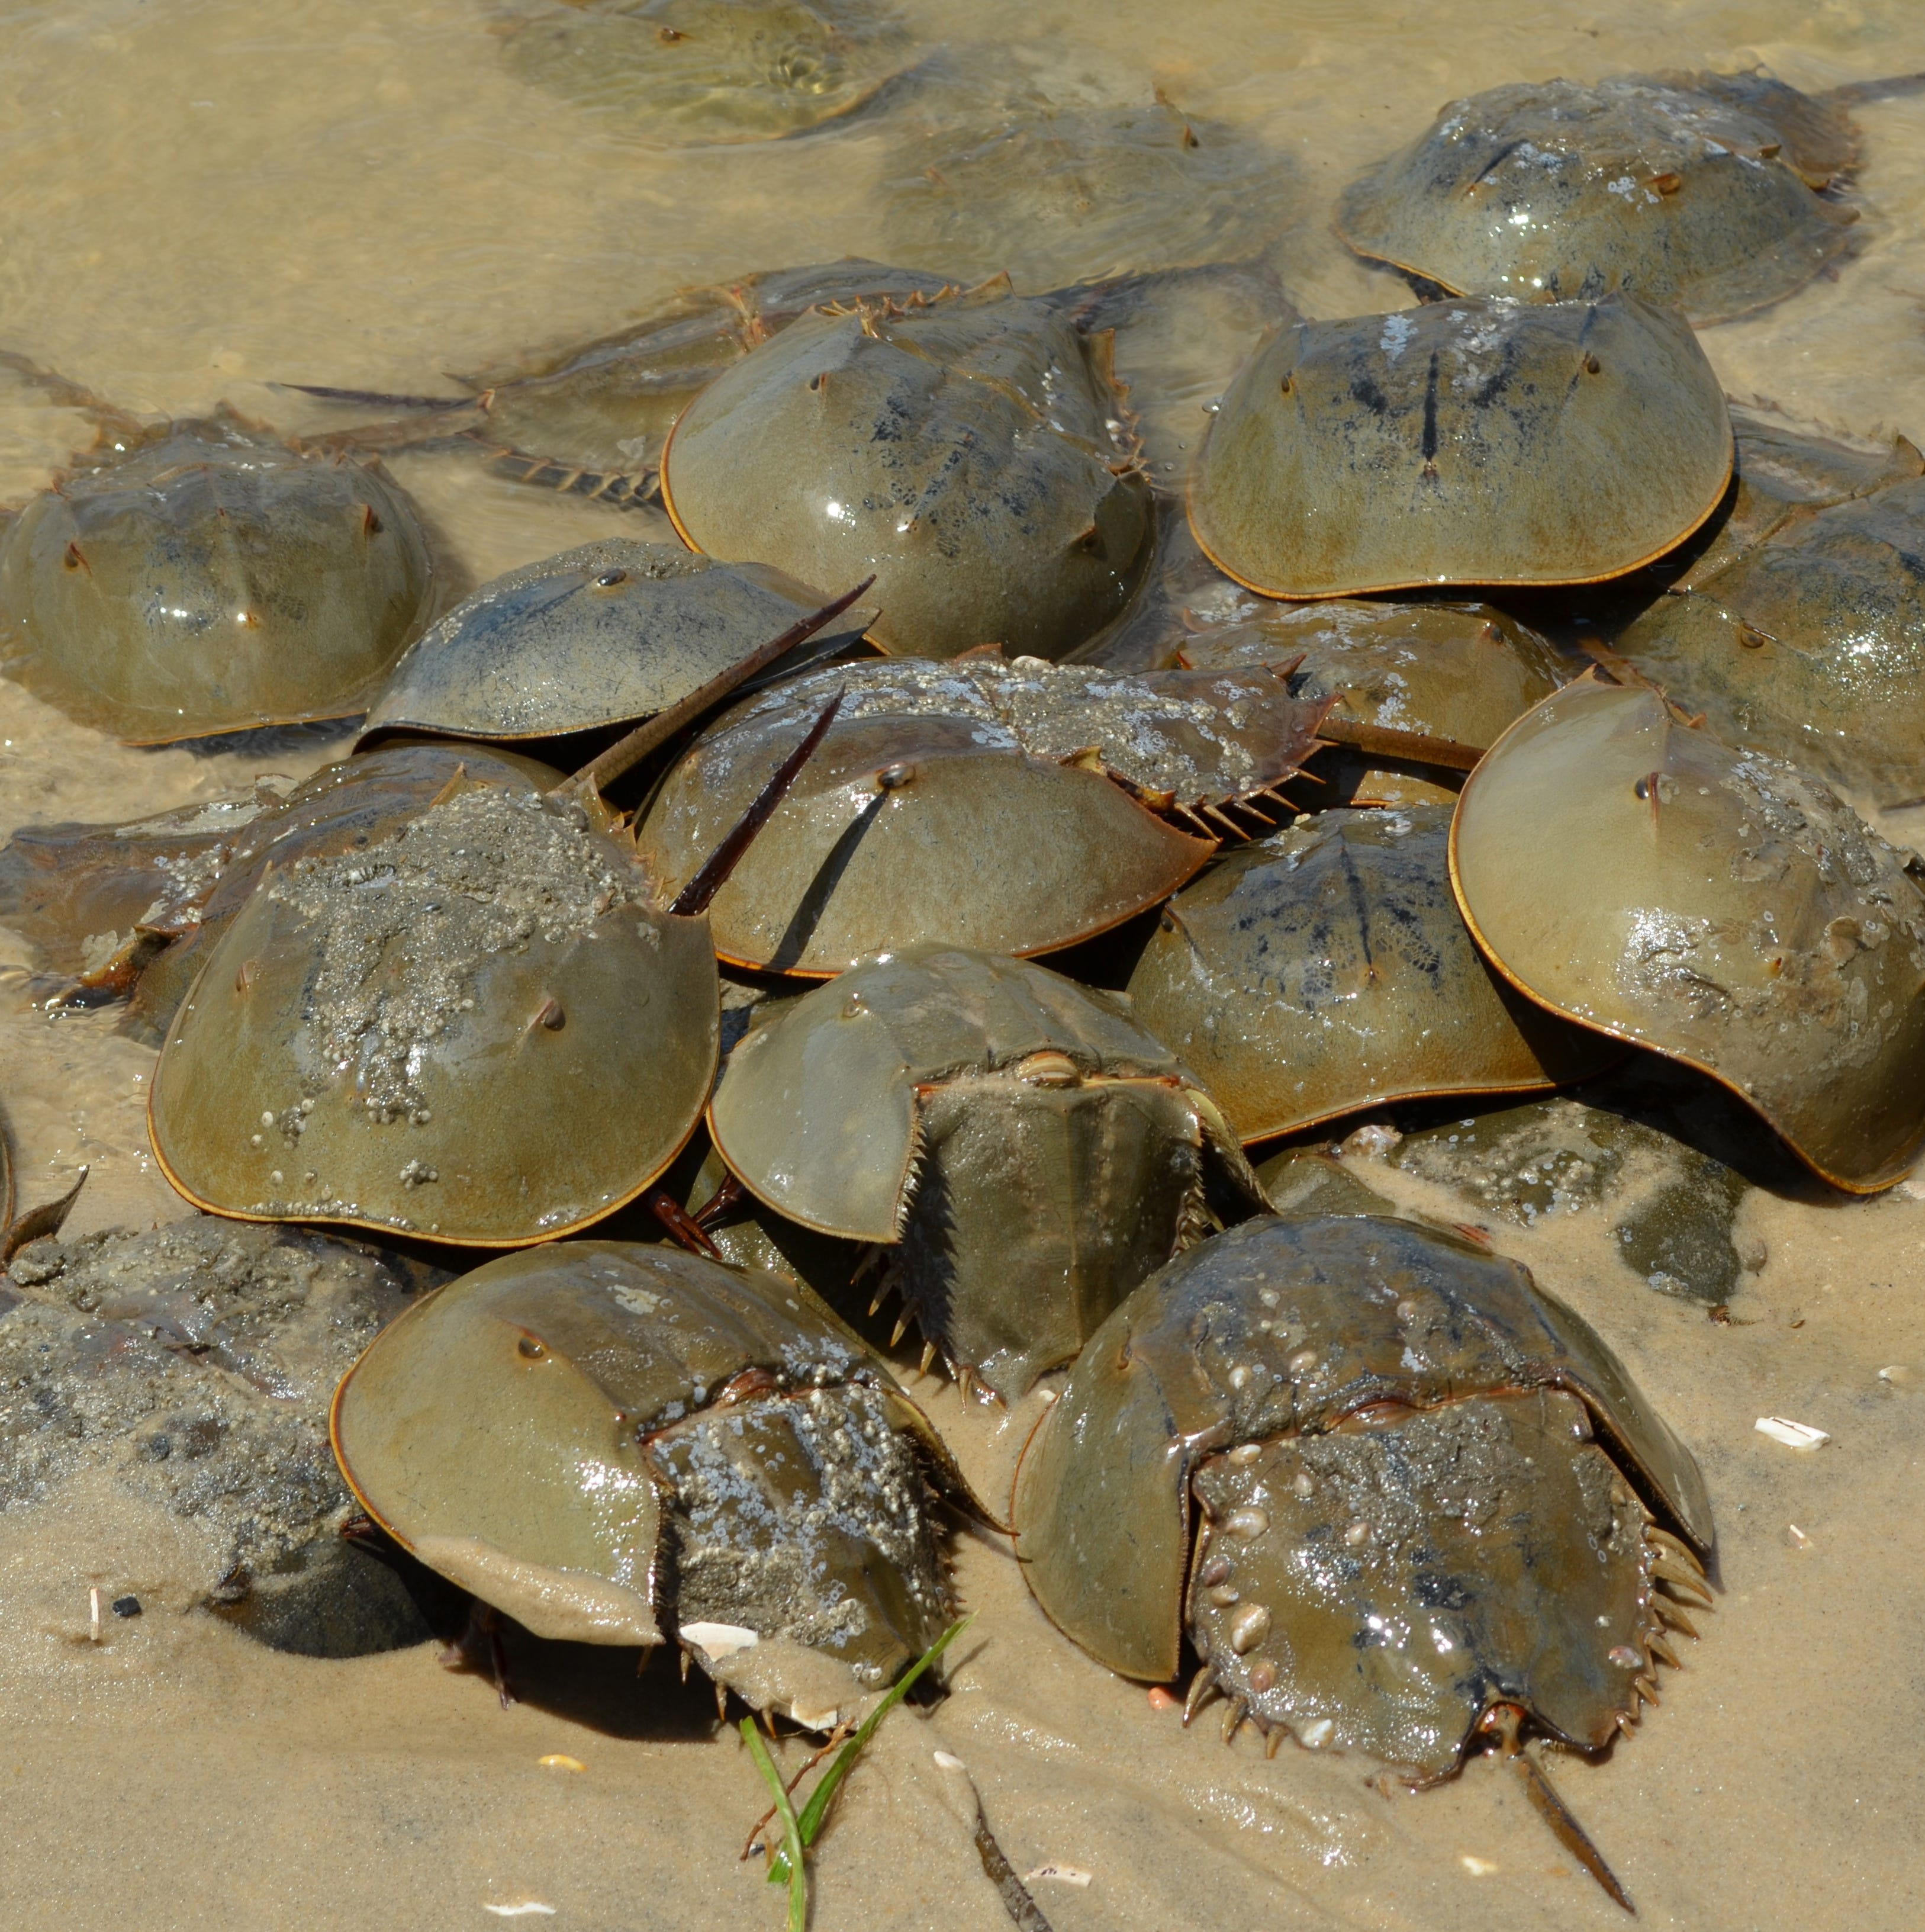 Neighbors briefs: Horseshoe crabs, studio tour, Easter egg hunt, book sale, fundraiser, music education